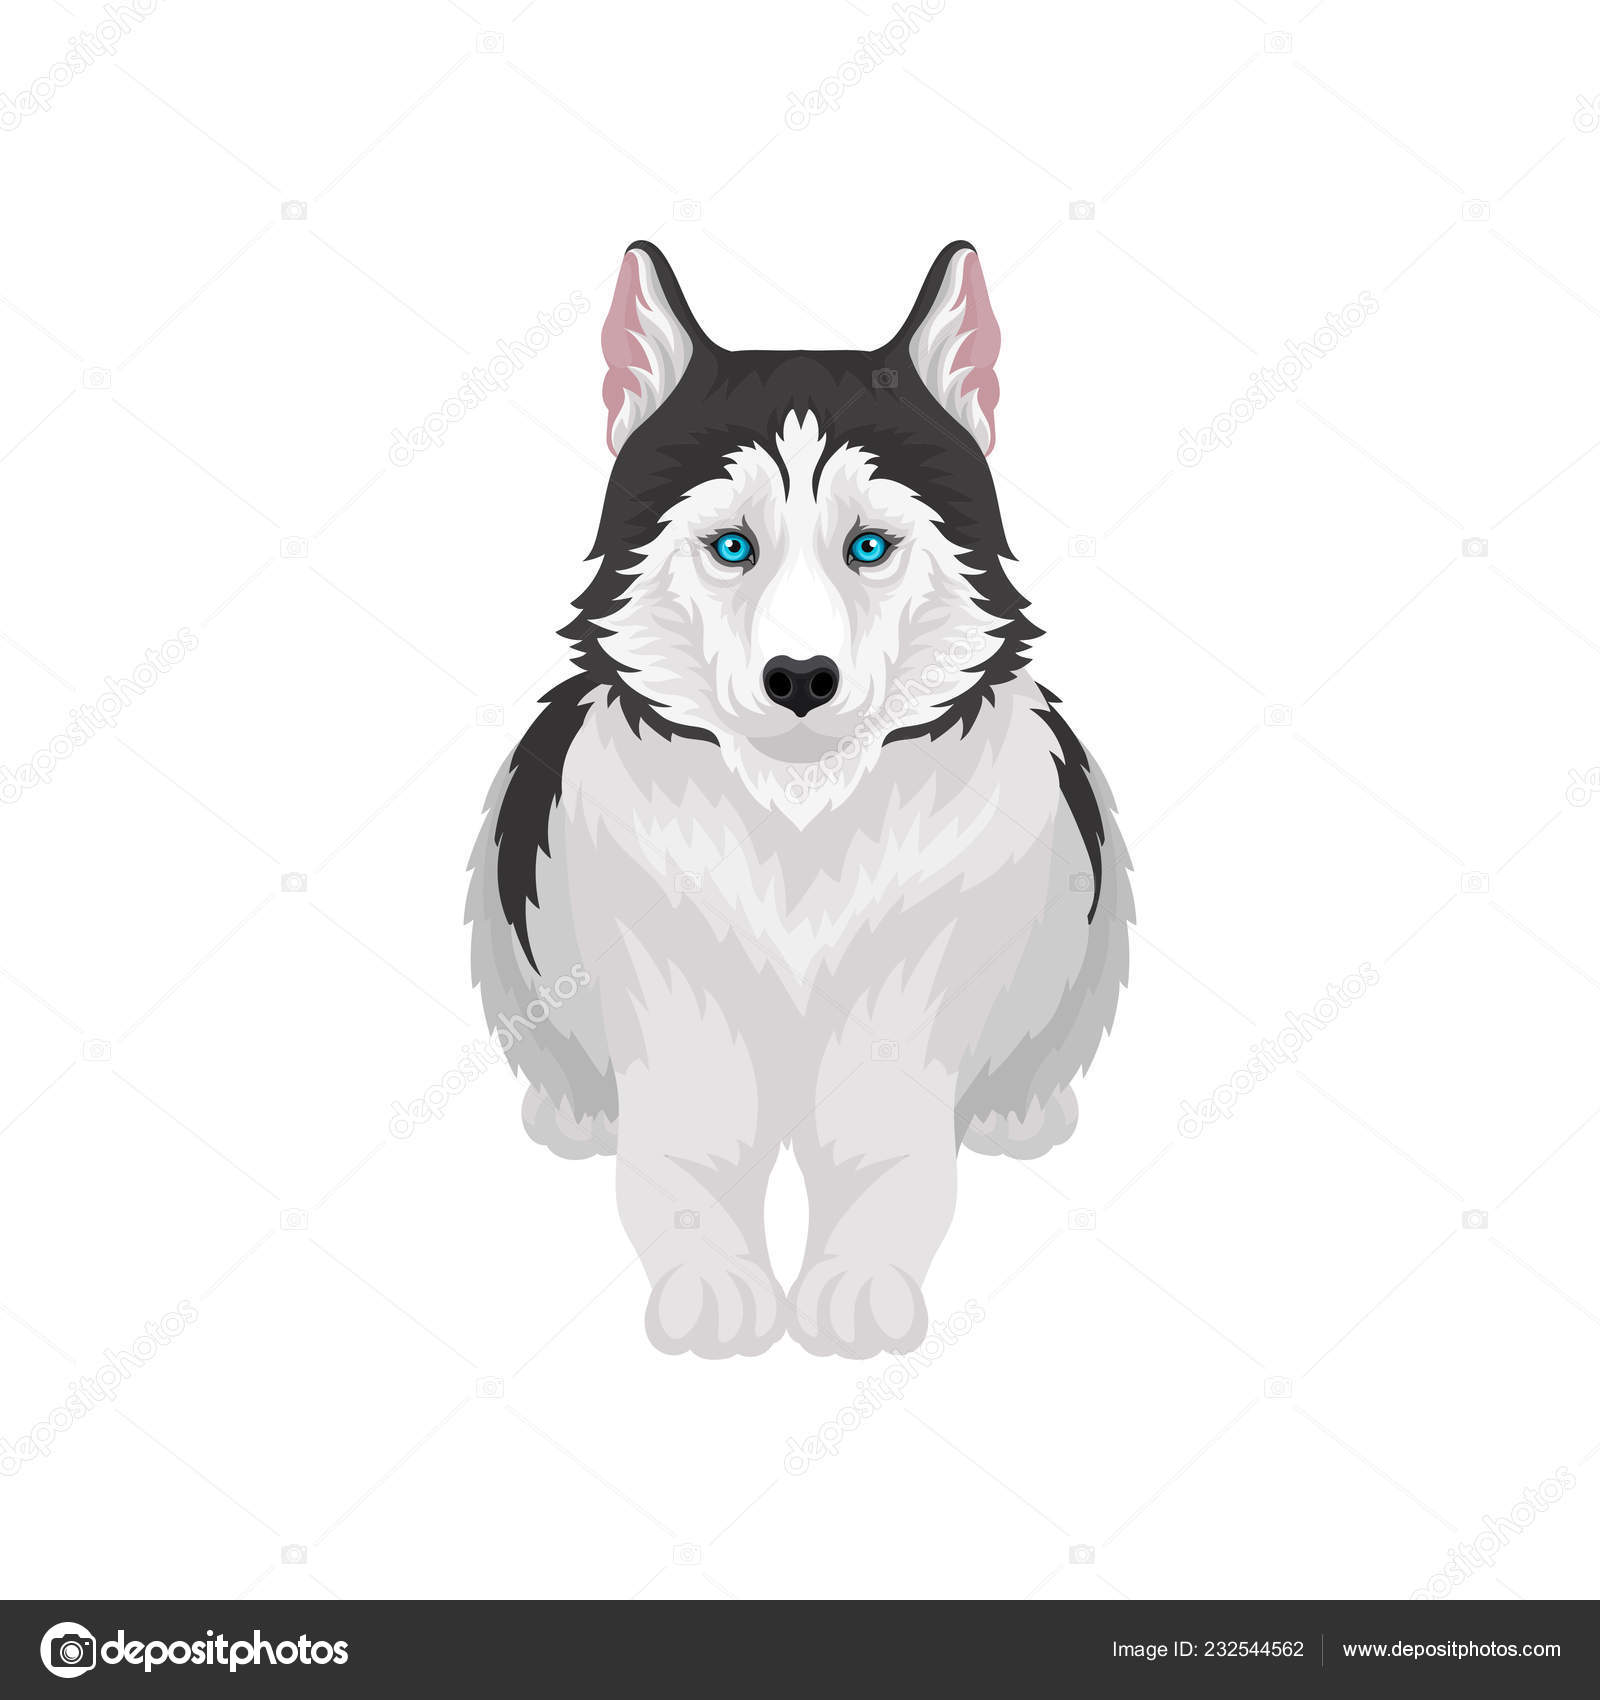 Siberian Husky Lying White And Black Purebred Dog Animal With Blue Eyes Front View Vector Illustration On A White Background Stock Vector C Happypictures 232544562